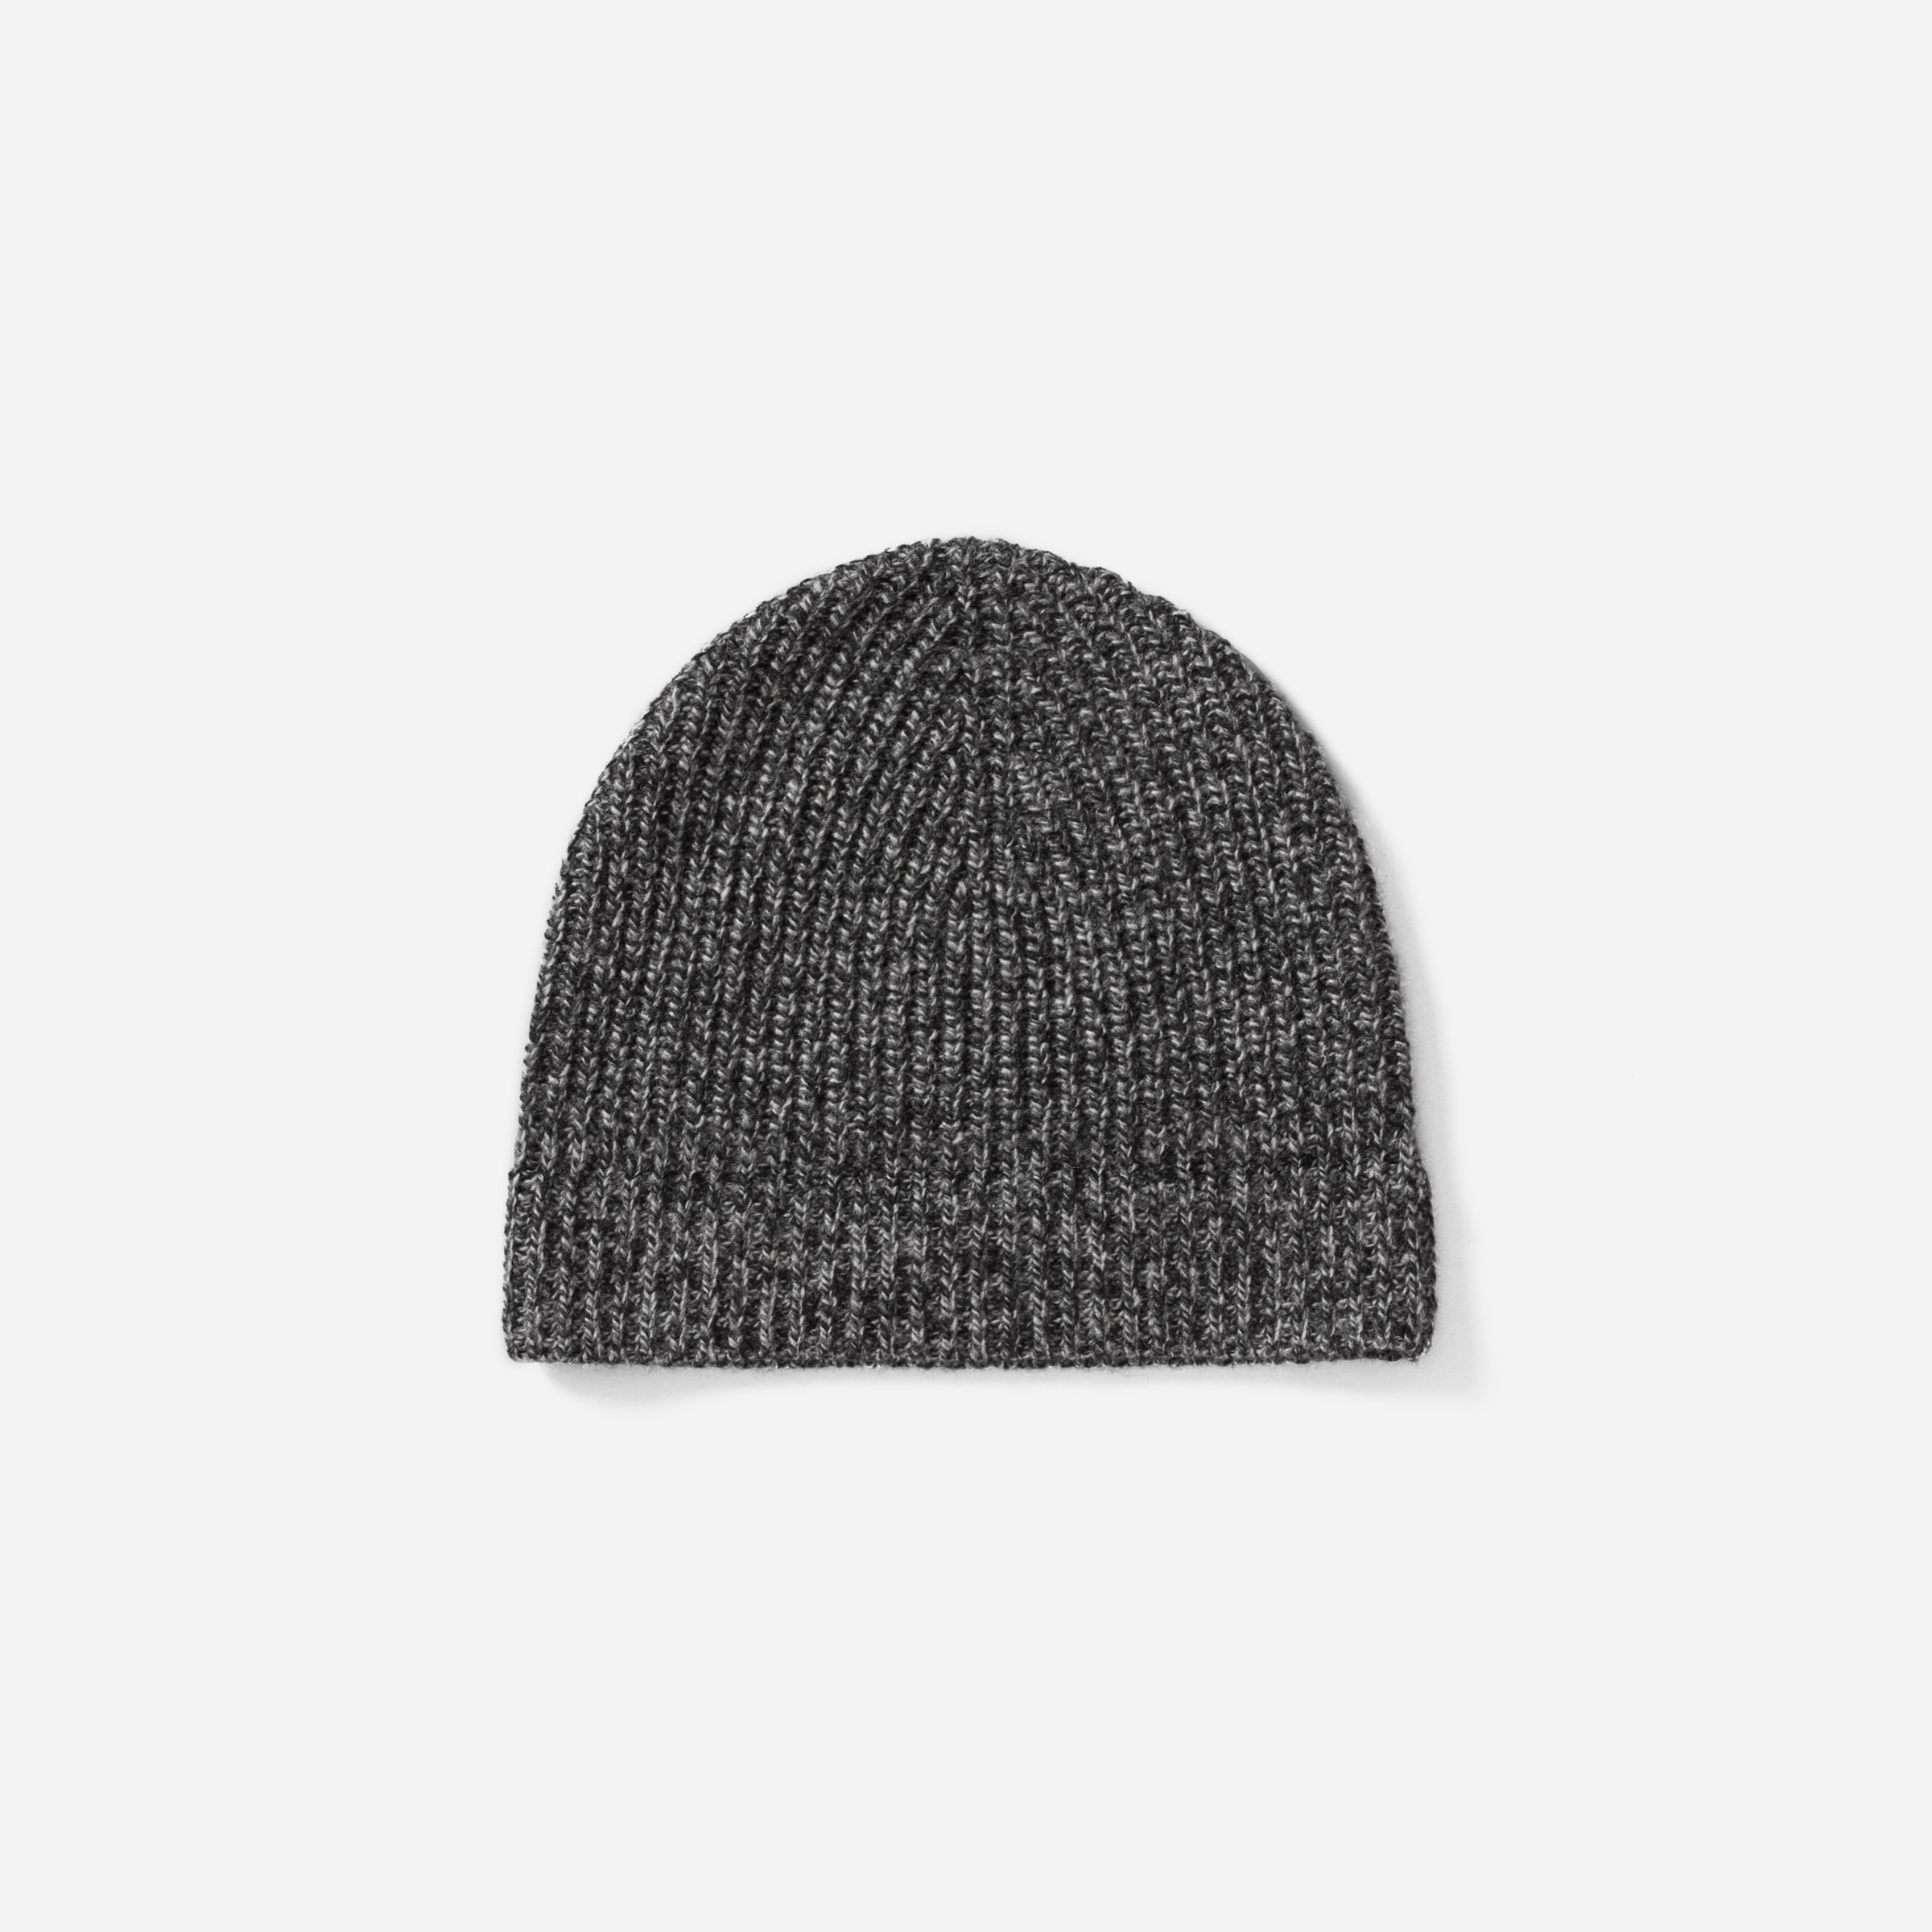 Men's Accessories, Gift Cards, Scarves, Hats & Gloves | Everlane